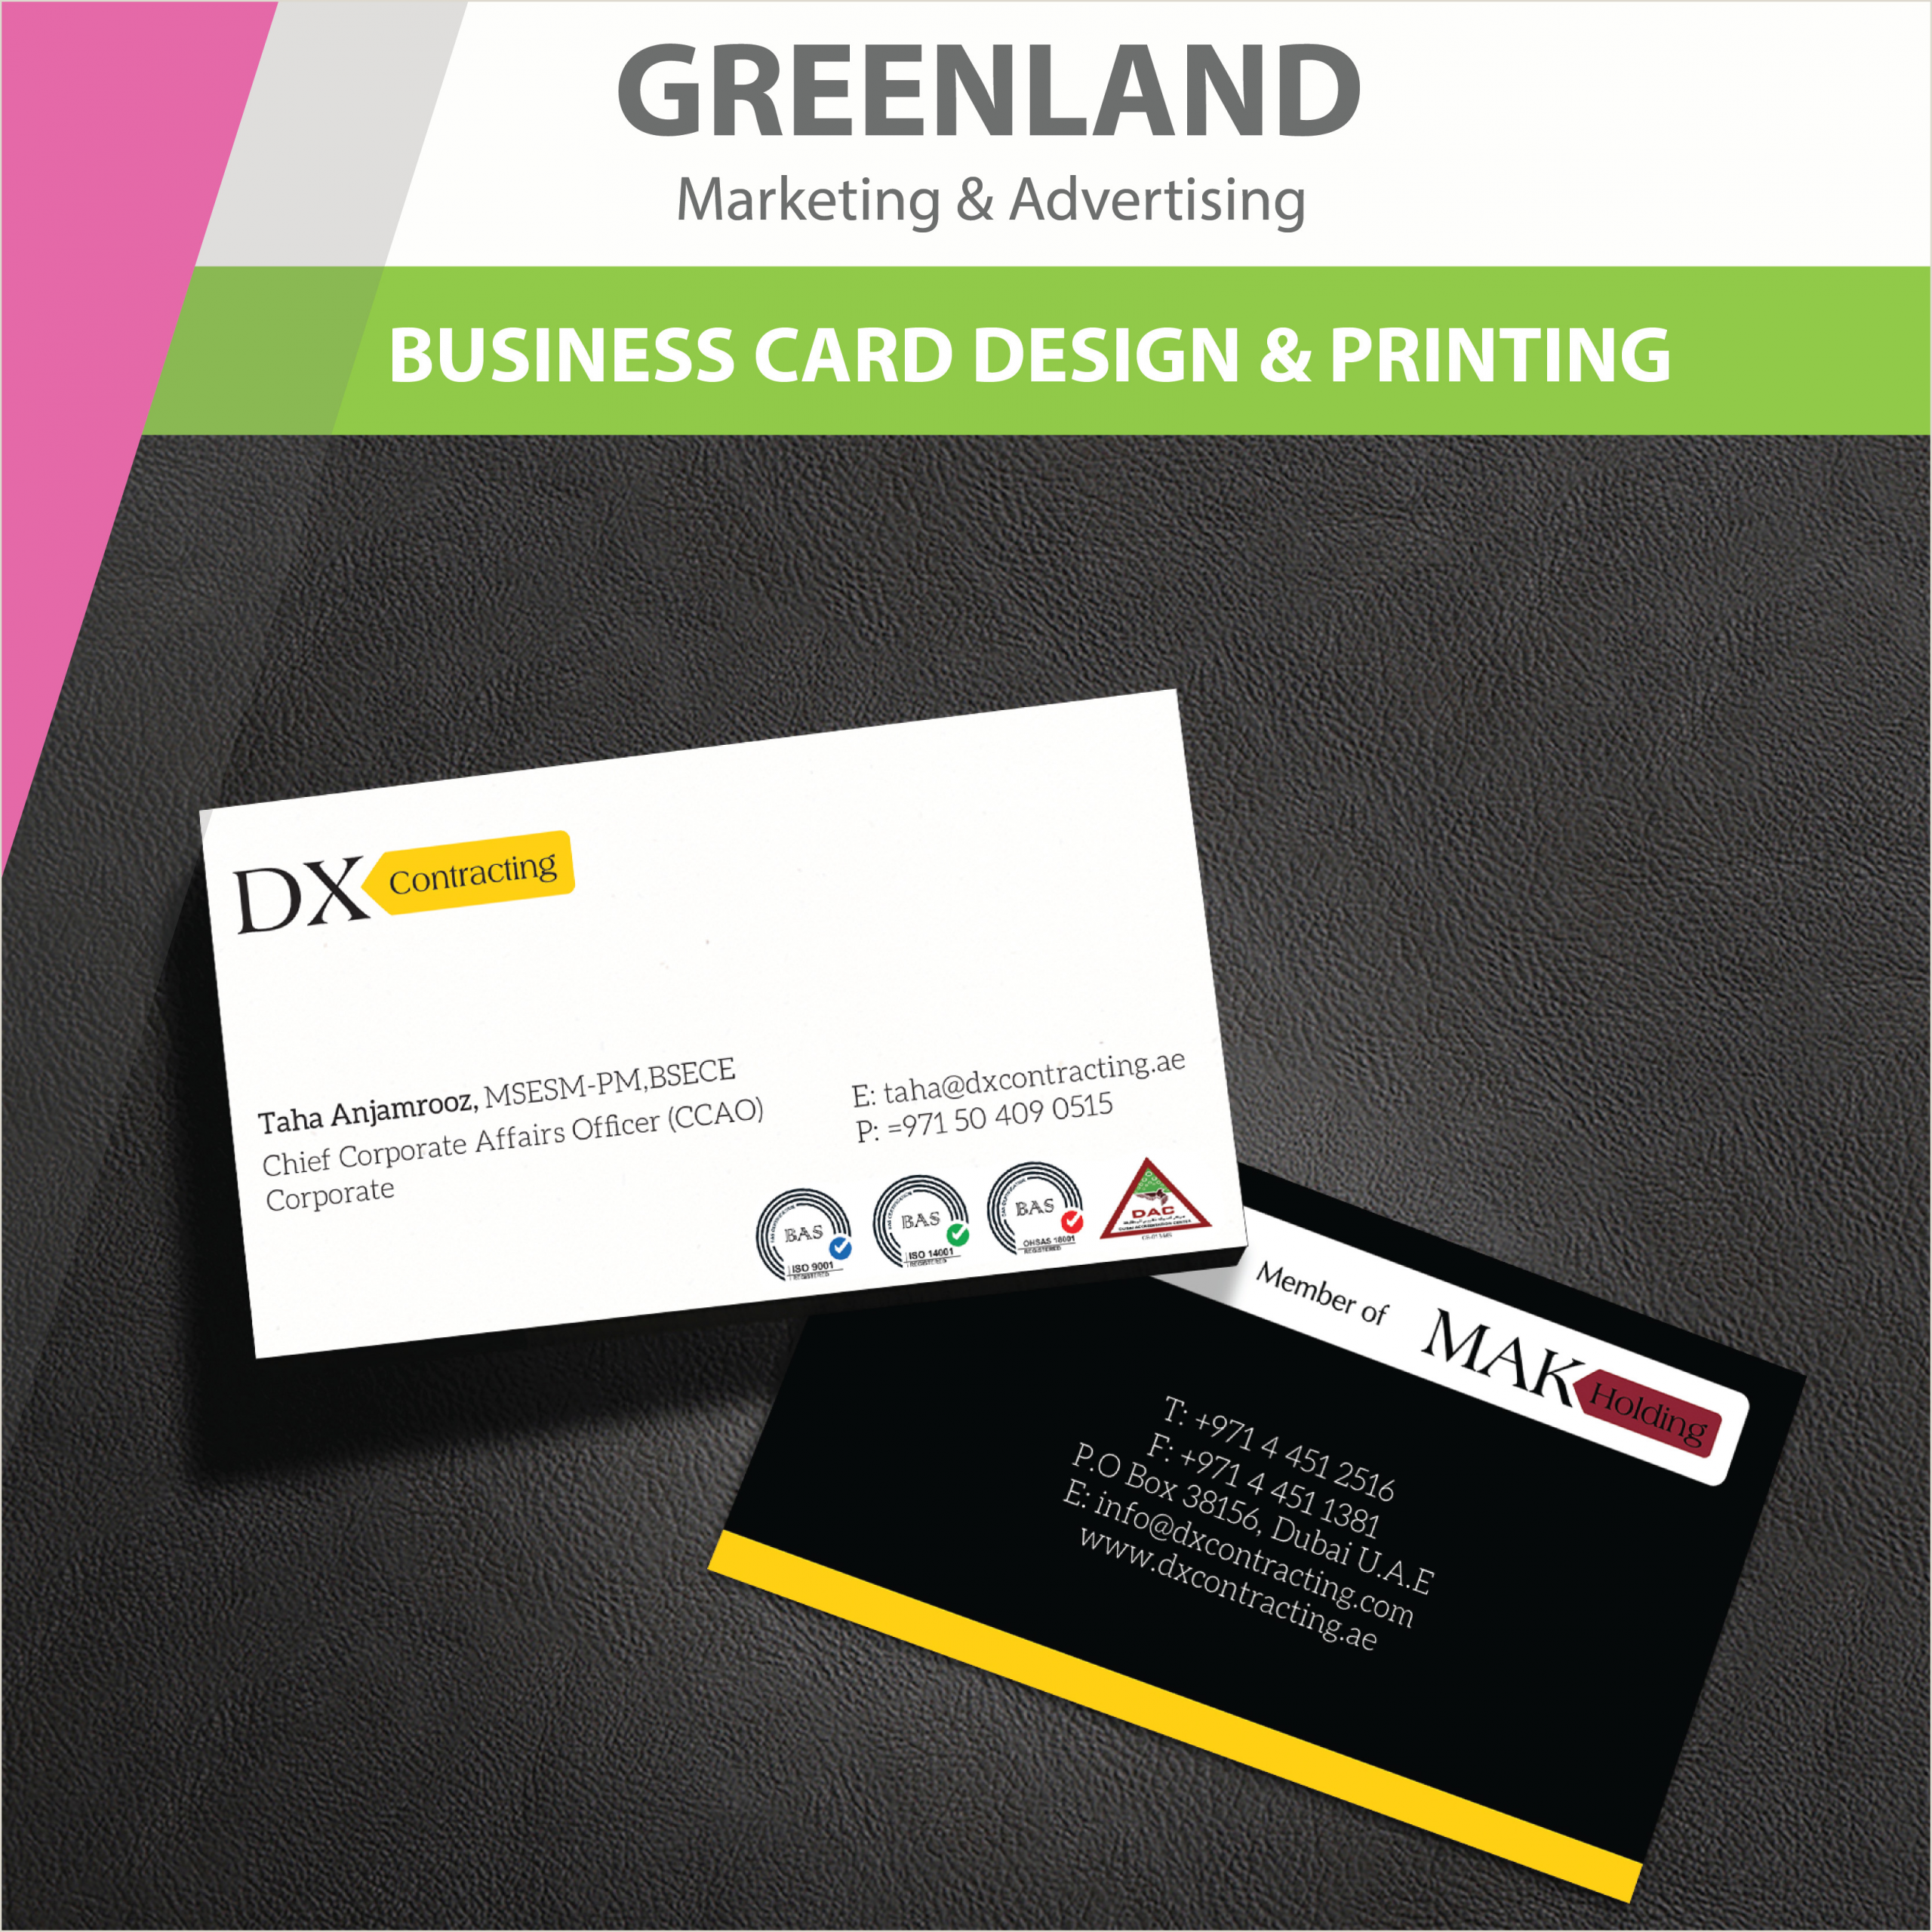 How To Make Business Card A Simple Yet Elegant And Corporate Looking Businesscard